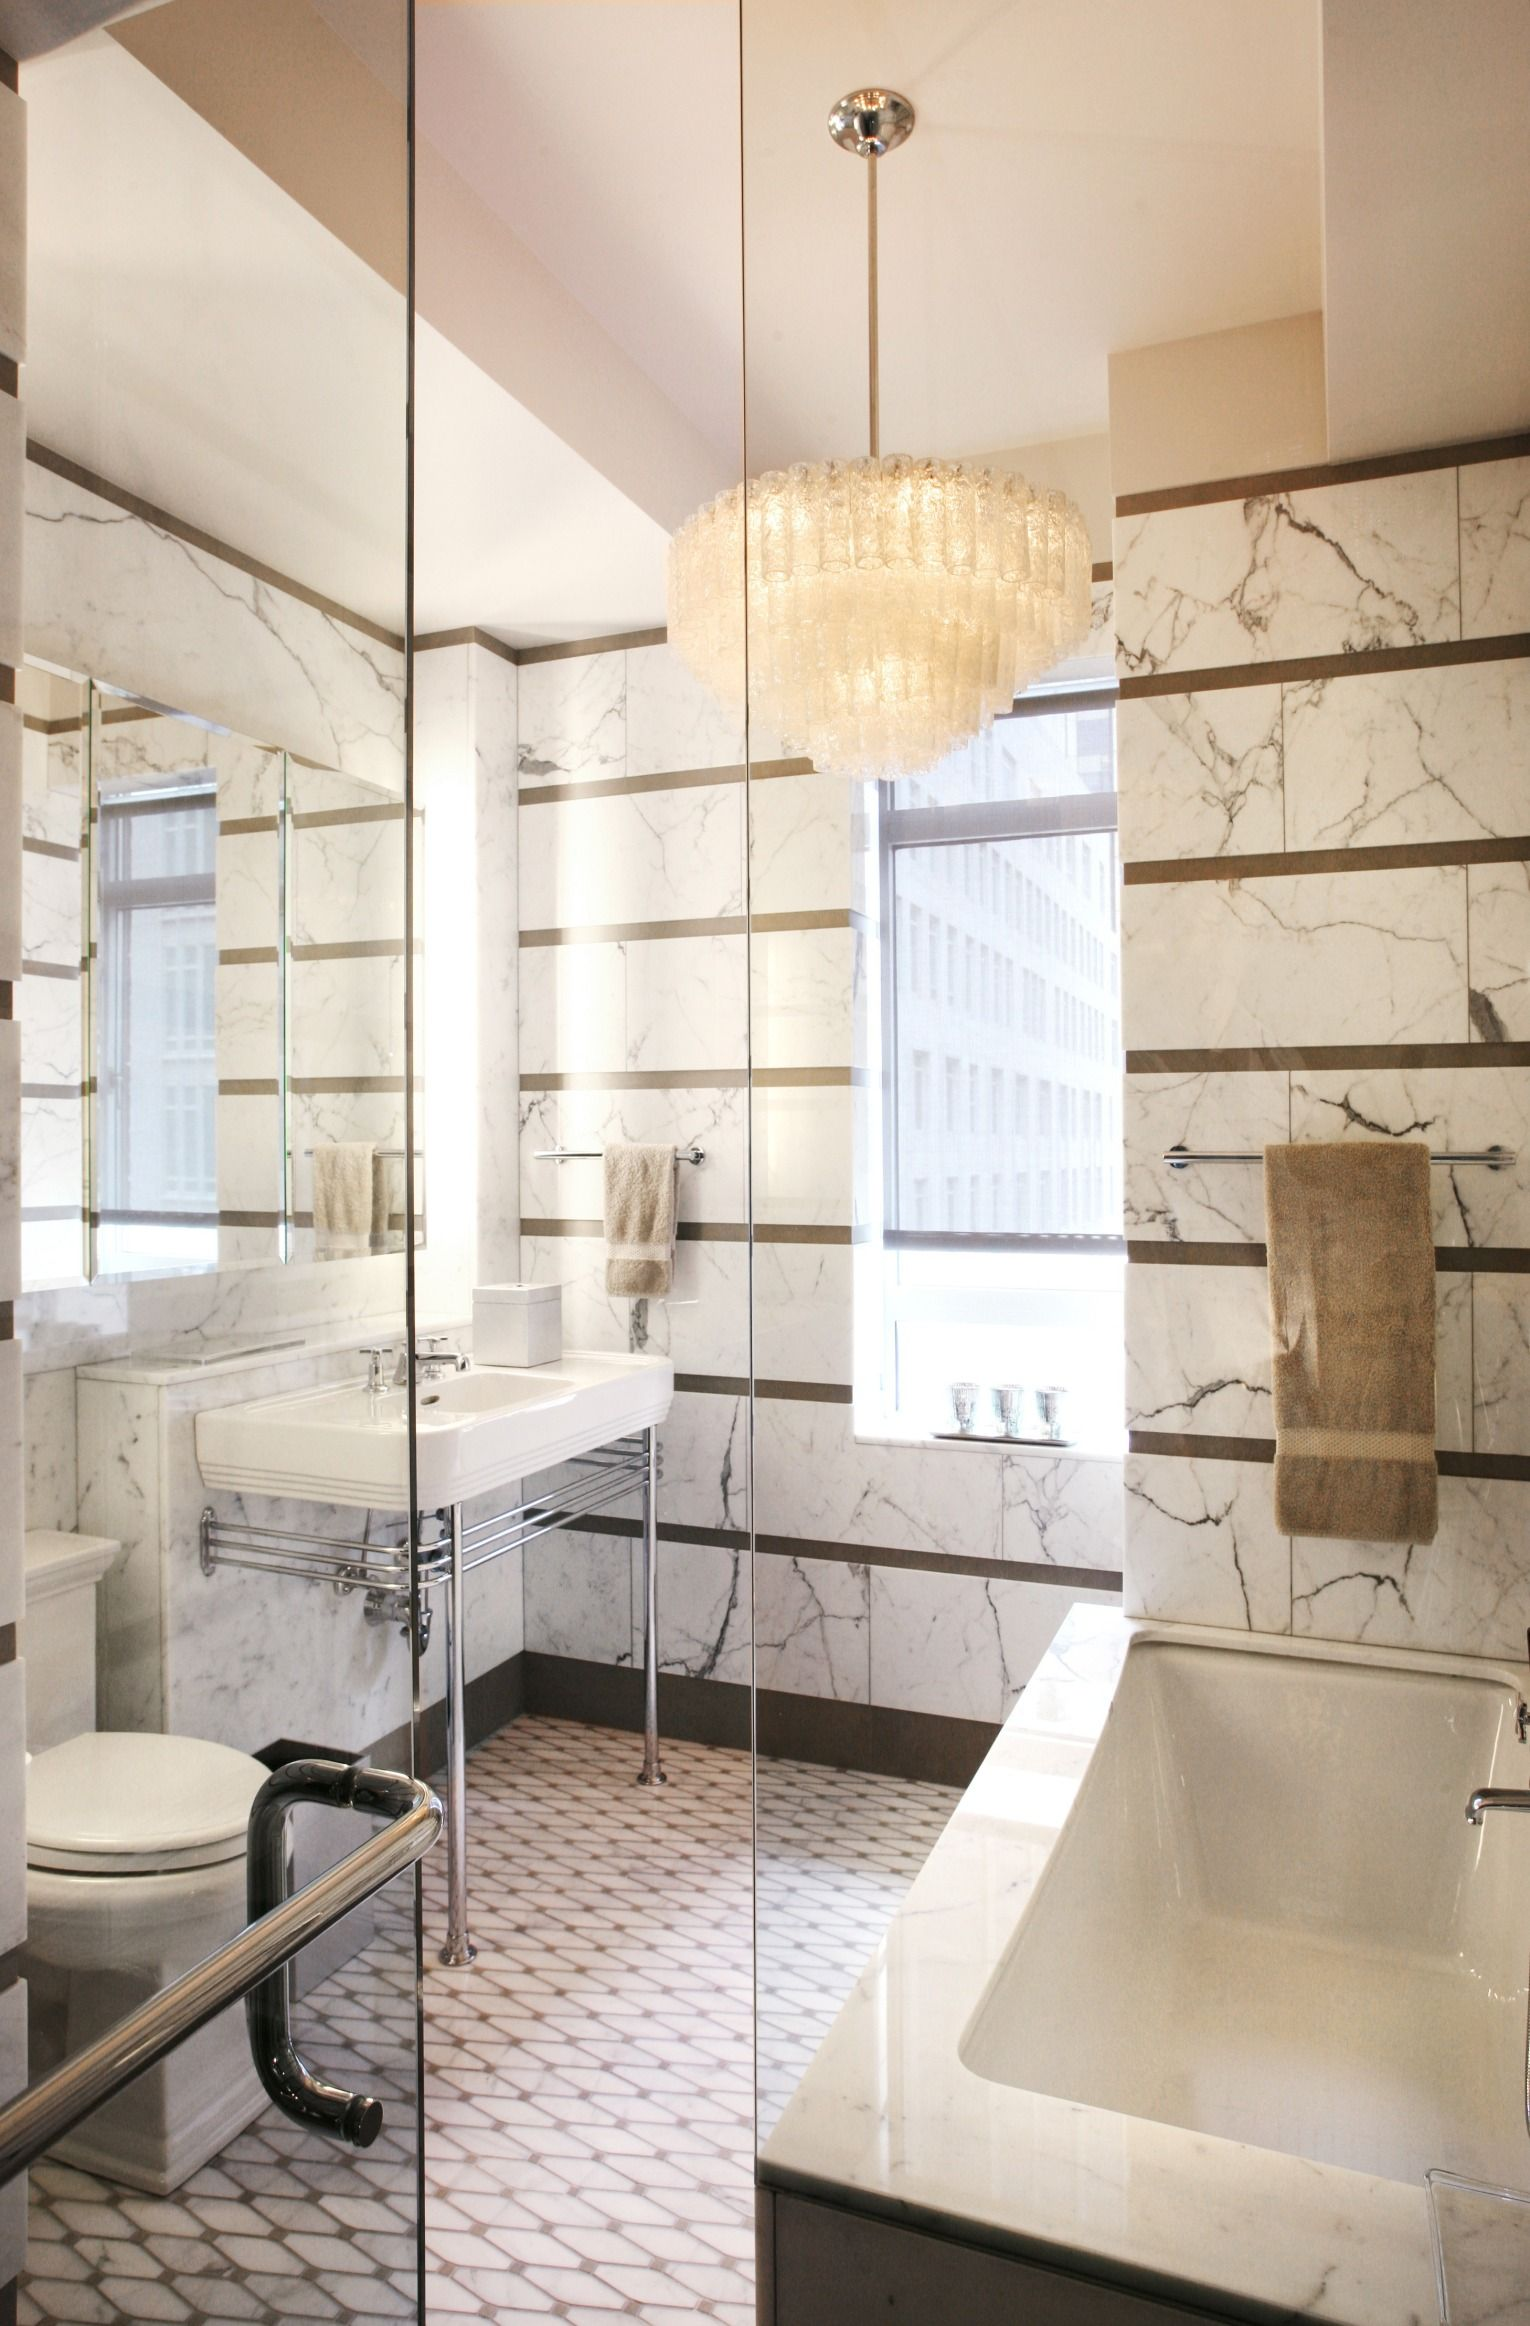 A Renovated New York Bathroom With Marble Walls And A Deco Inspired Bath |  Archdigest.com